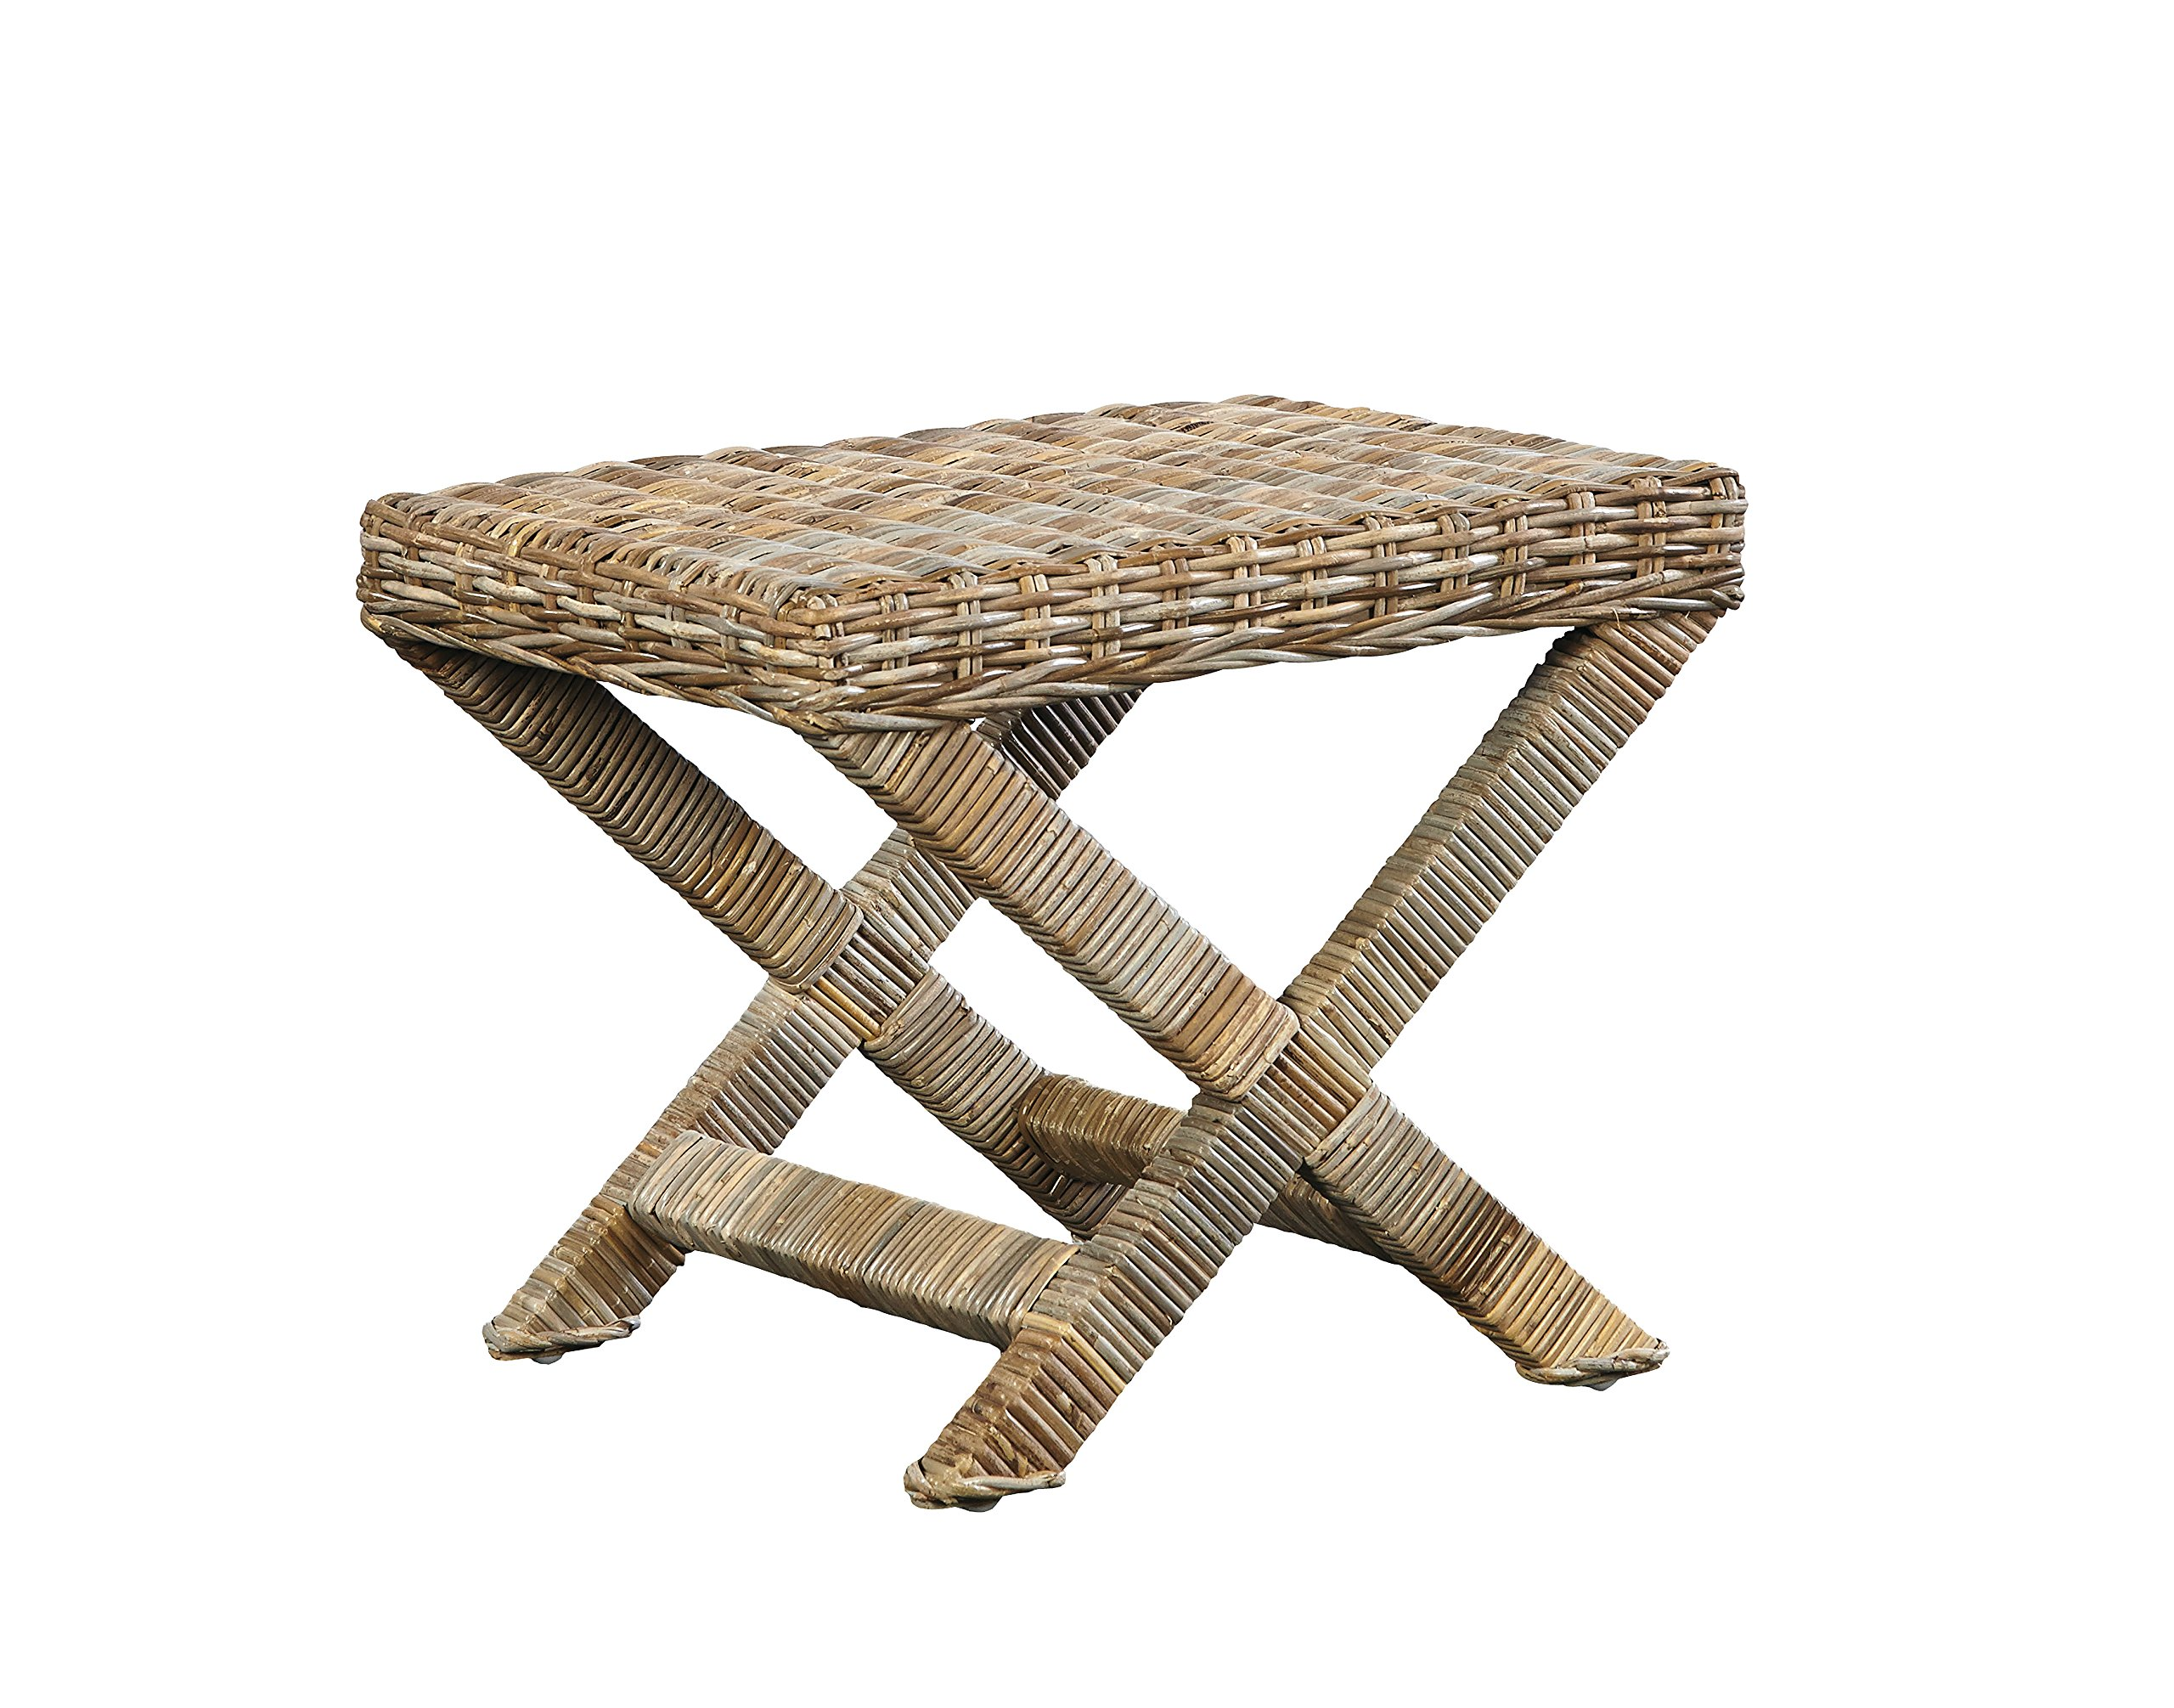 Sloane Elliot SE0430 Meiryo Woven Kubu Stool, Natural Wood Finish